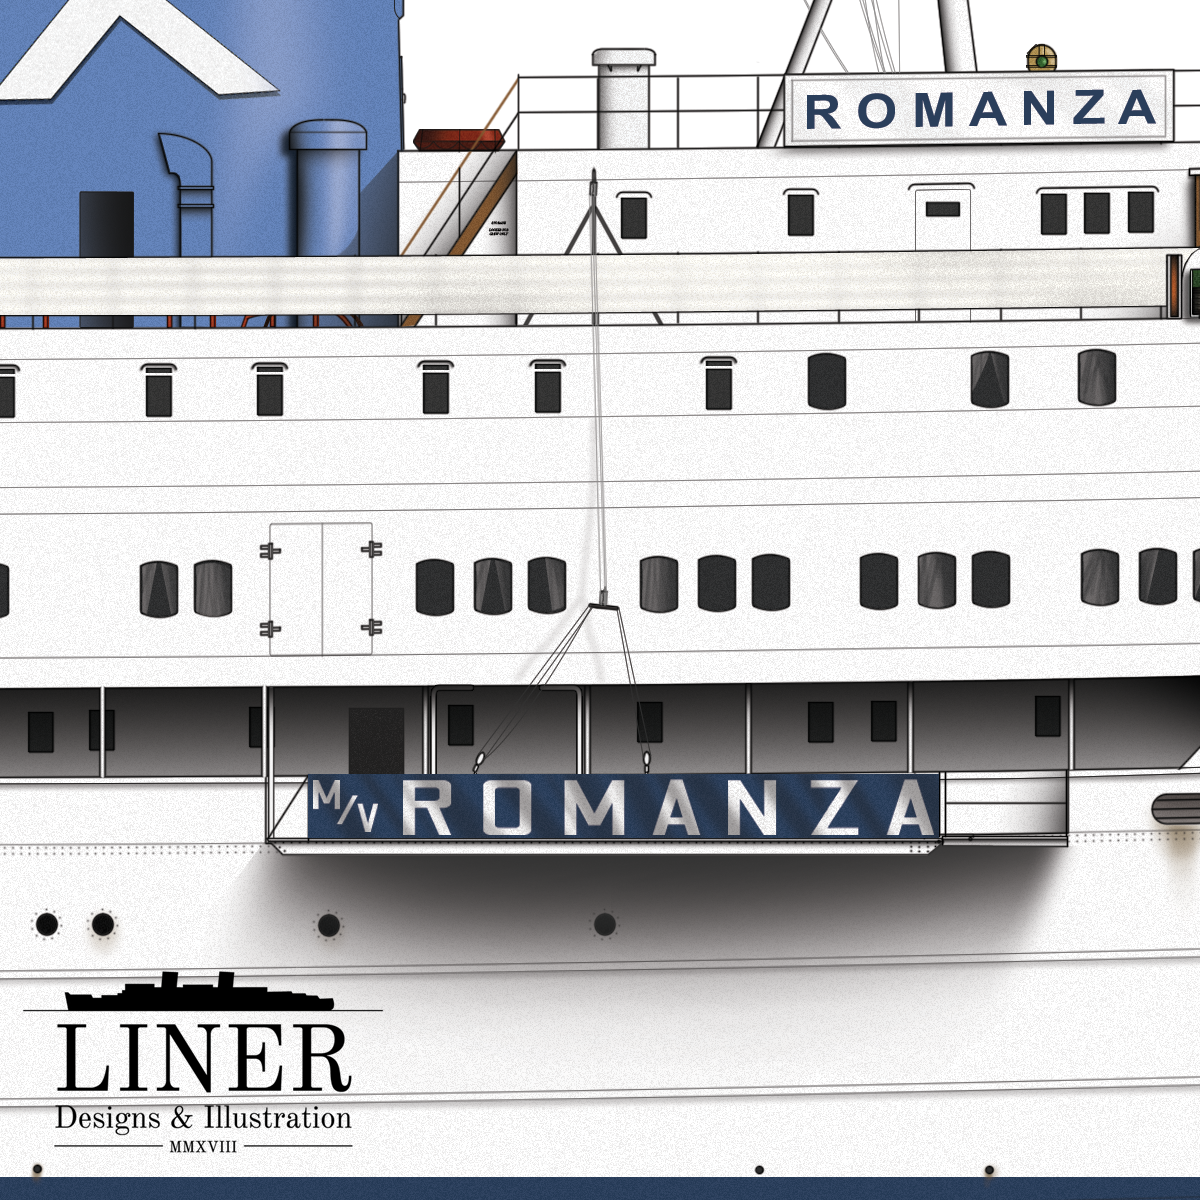 Romanza's gangway proudly bore her name for all to see. Note the curtains behind some of the windows amidships.